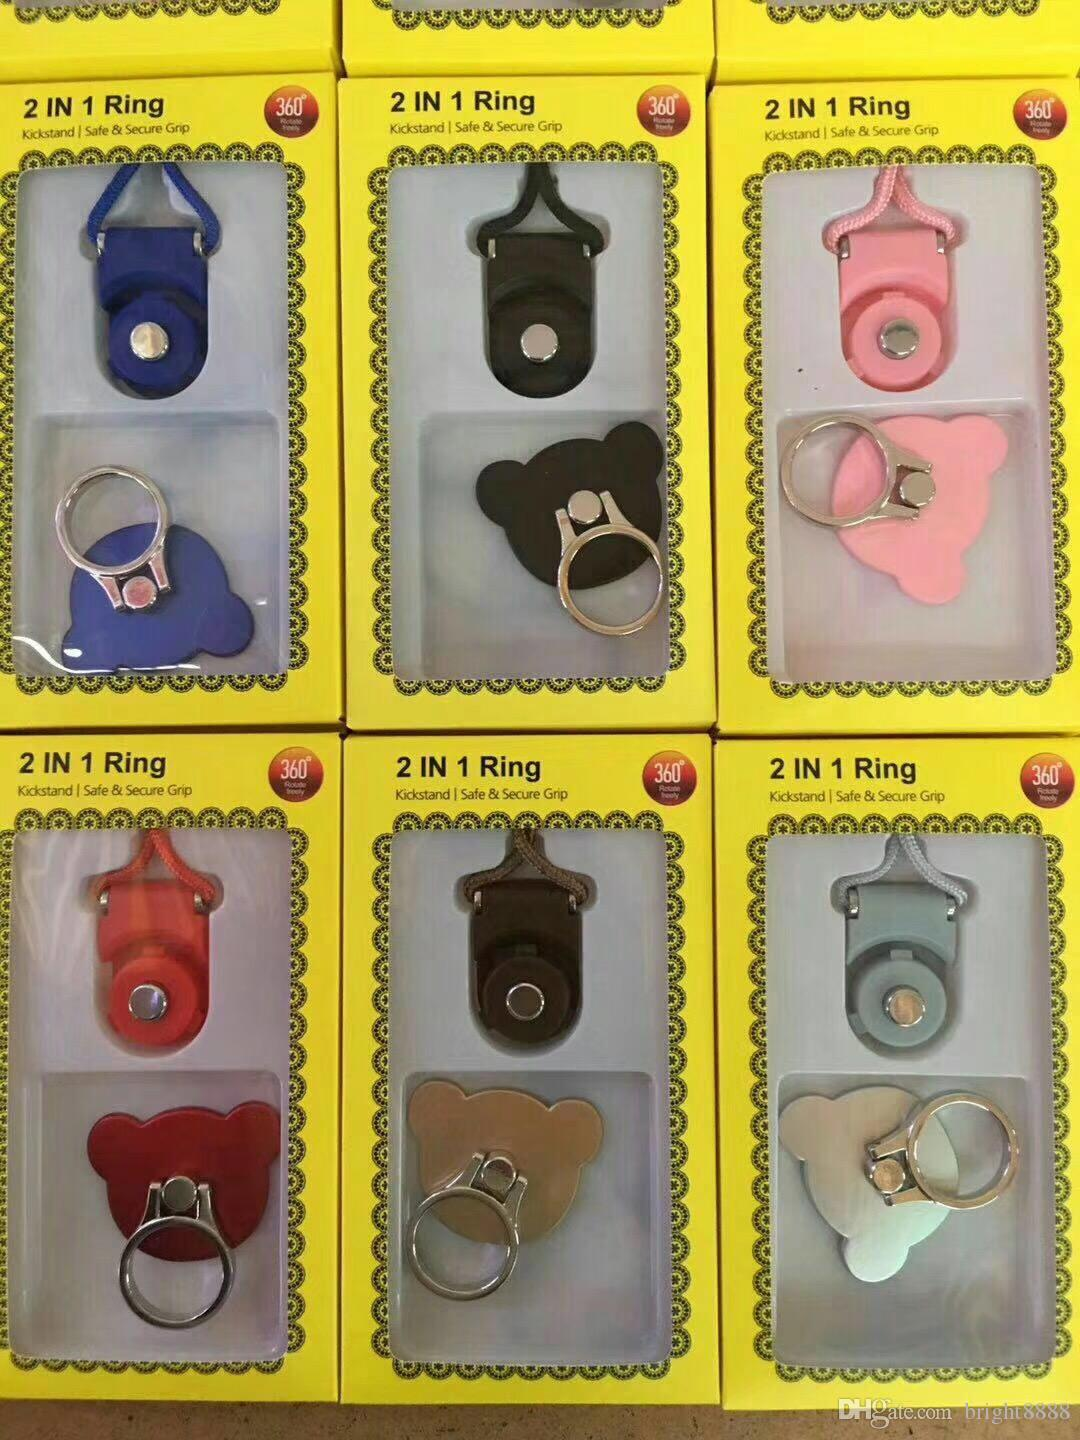 Ring buckle multifunction lanyard combo ring buckle lanyard with bracket Can rotate the buckle long lanyard strap